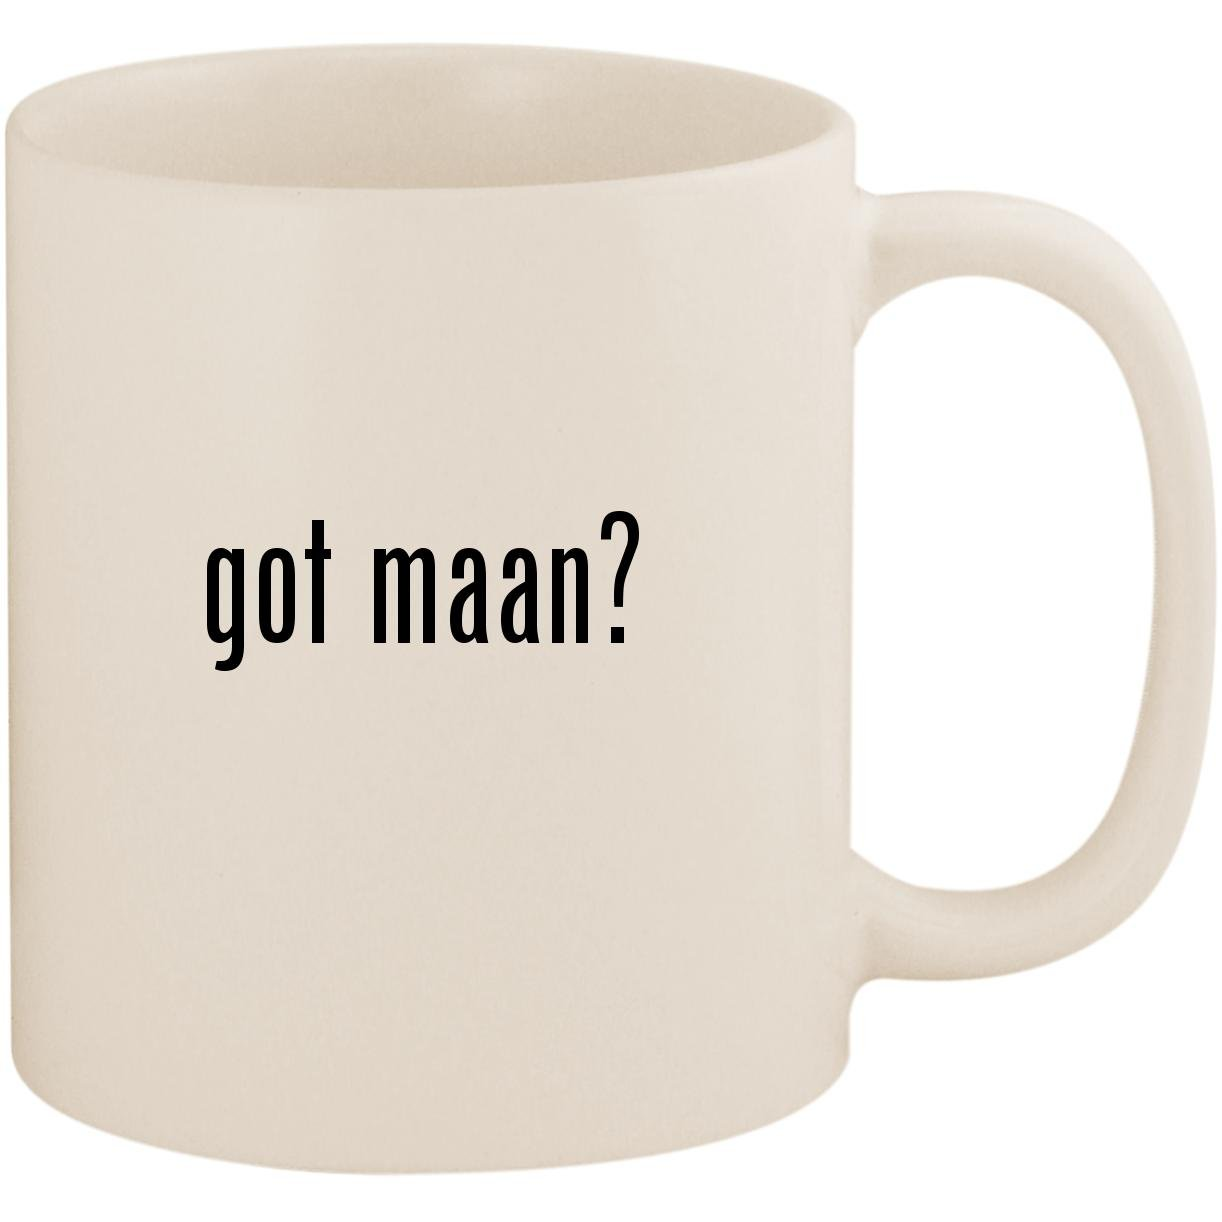 got maan? - 11oz Ceramic White Coffee Mug Cup, White by Molandra Products